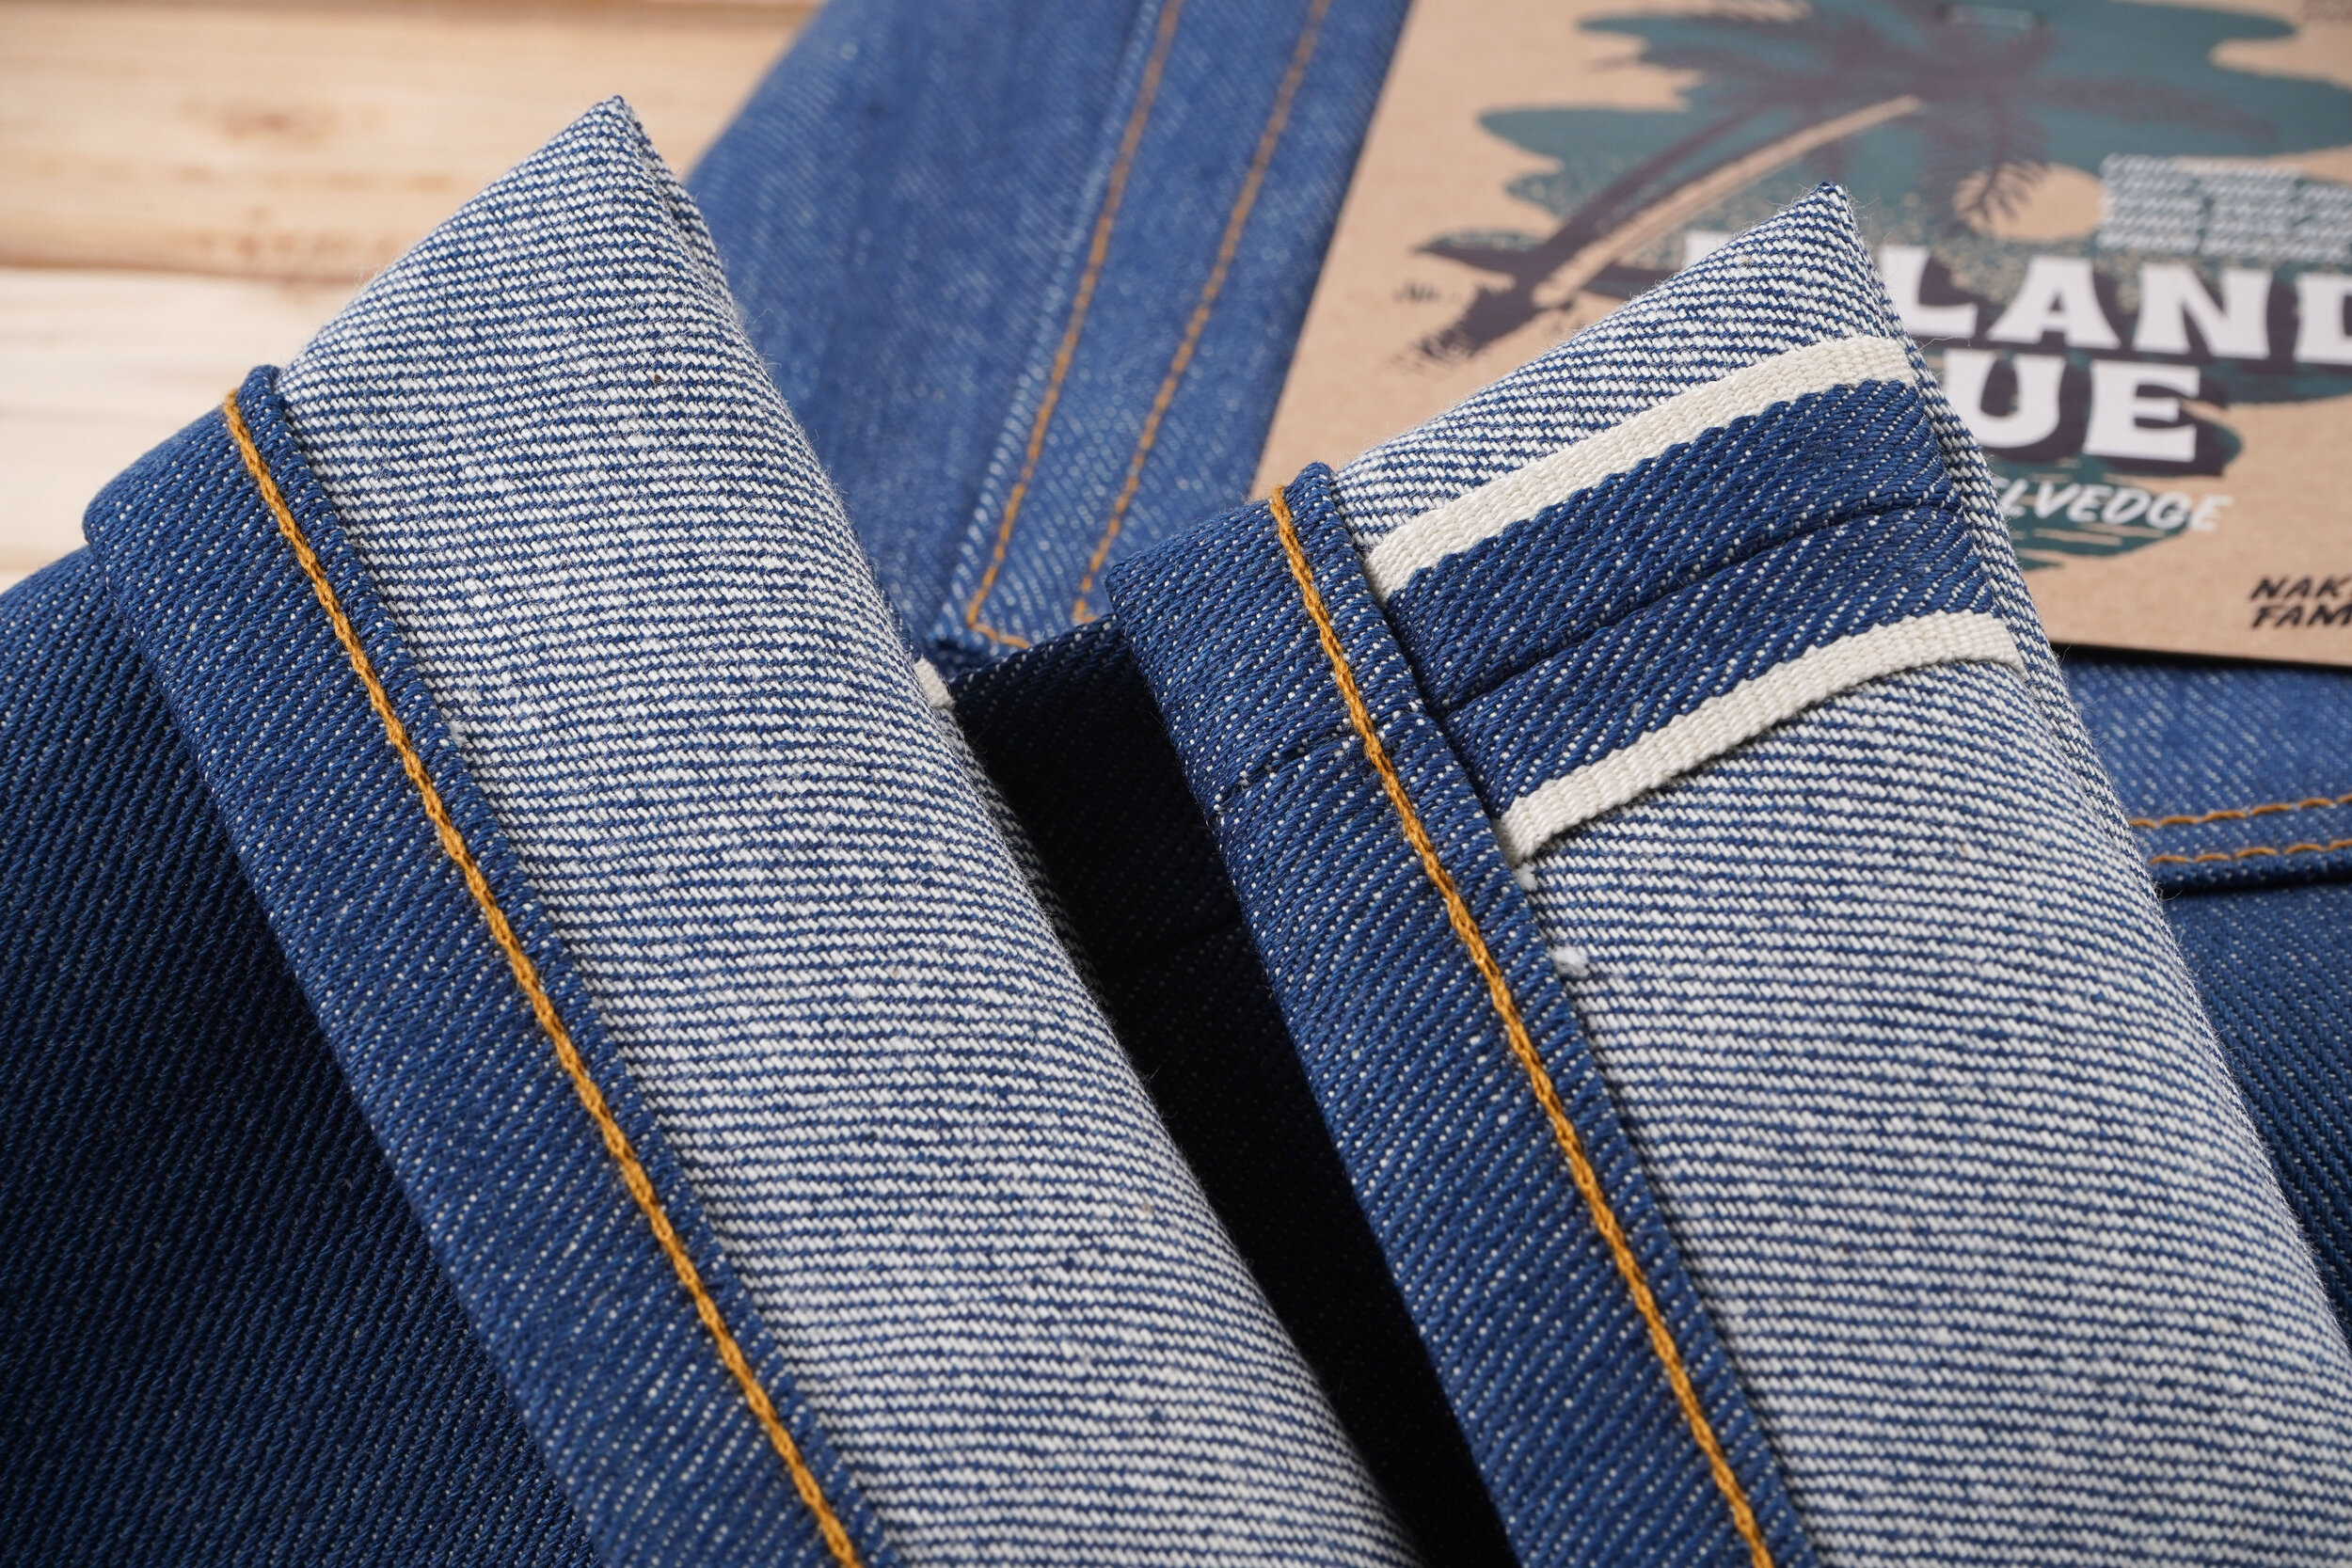 Island Blue Stretch Selvedge - Selvedge ID